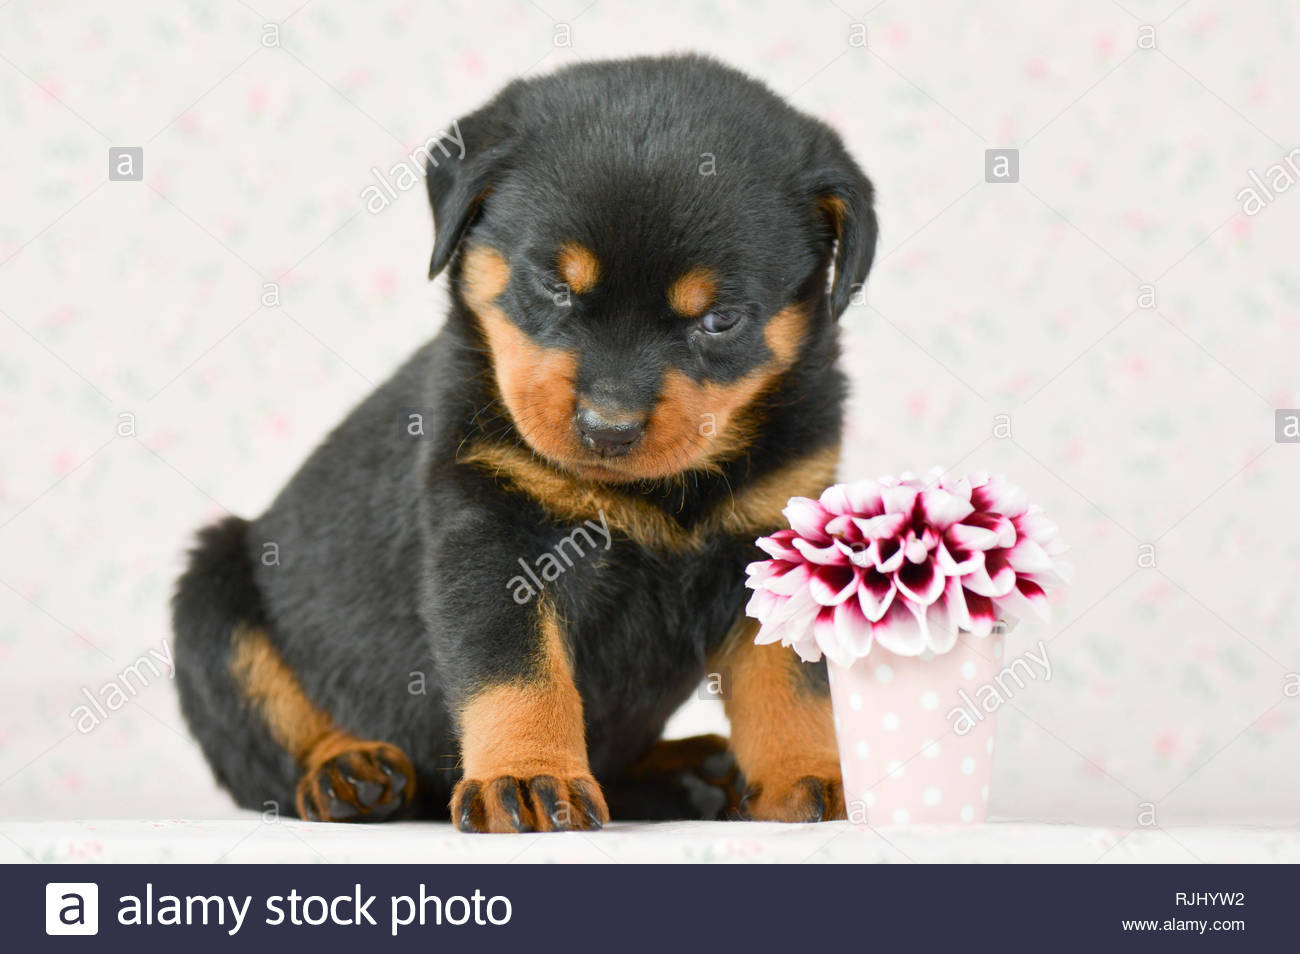 Rottweiler. A puppy (5 weeks old) gives a dahlia flower a very critical look. Studio picture. Germany - Stock Image